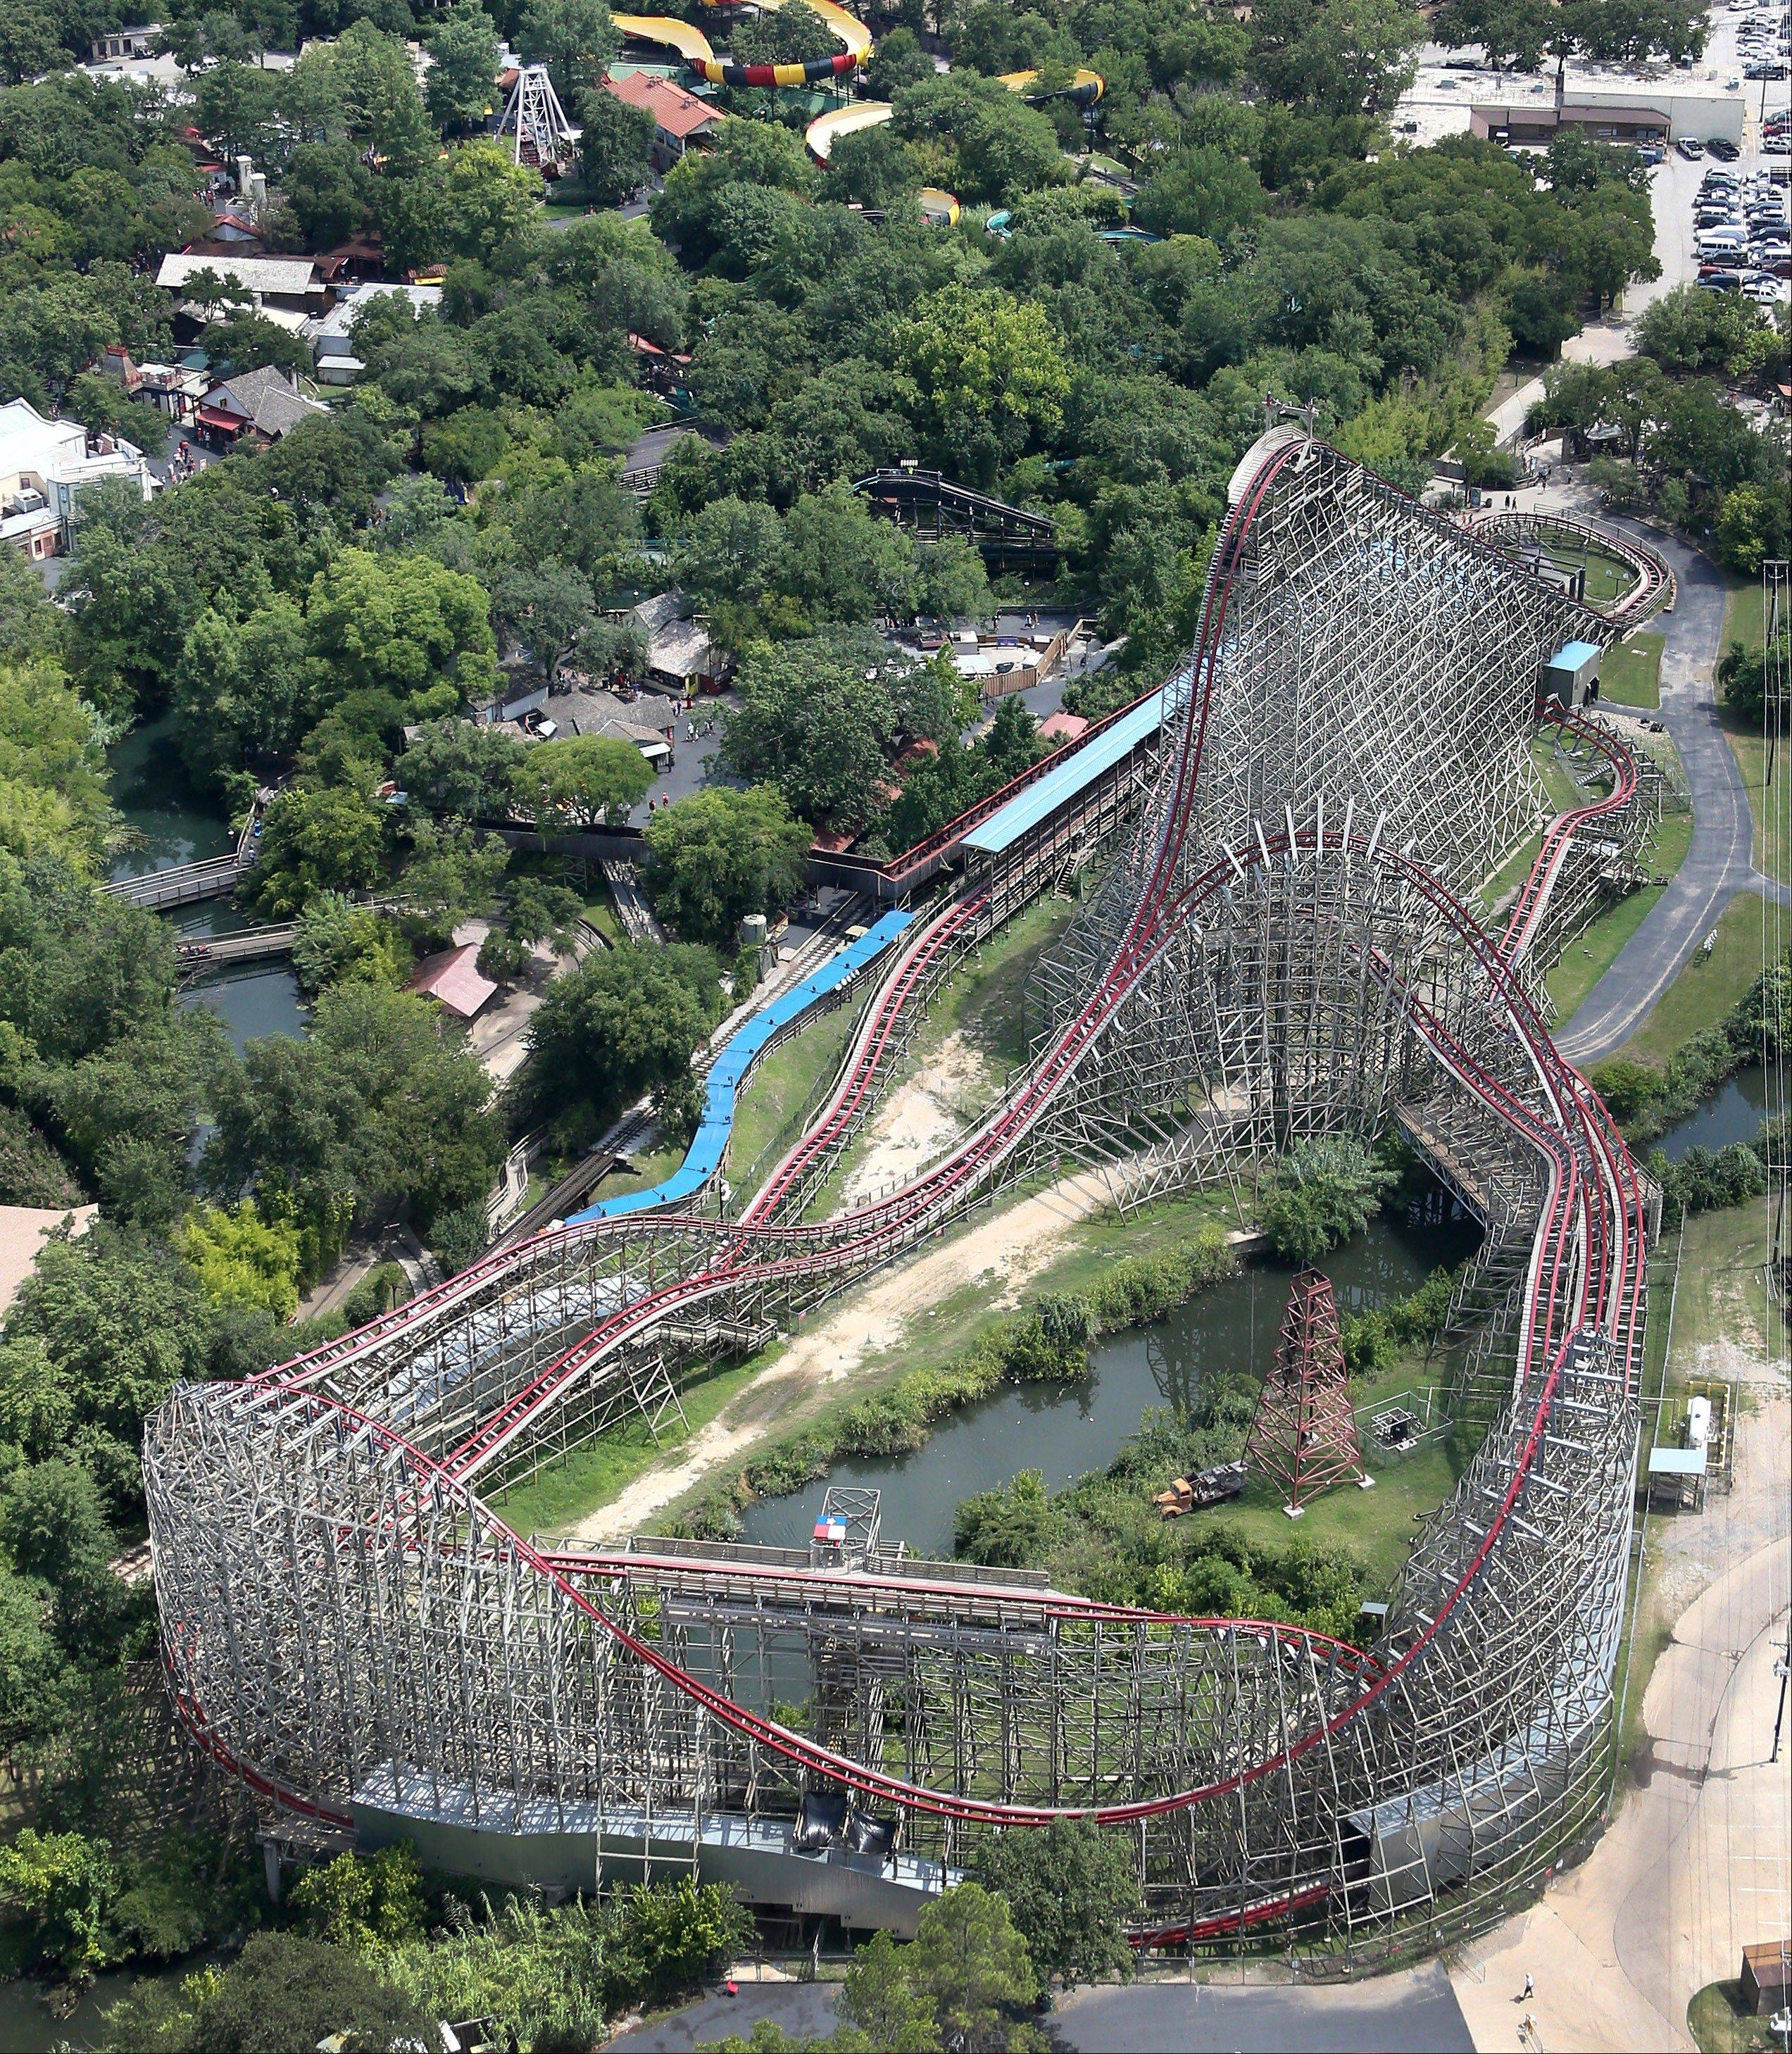 This aerial photo shows the Texas Giant roller coaster at Six Flags Over Texas where a woman fell to her death Saturday in Arlington, Texas. Investigators will try to determine if the woman fell from the ride after, some witnesses said, she wasn't properly secured.